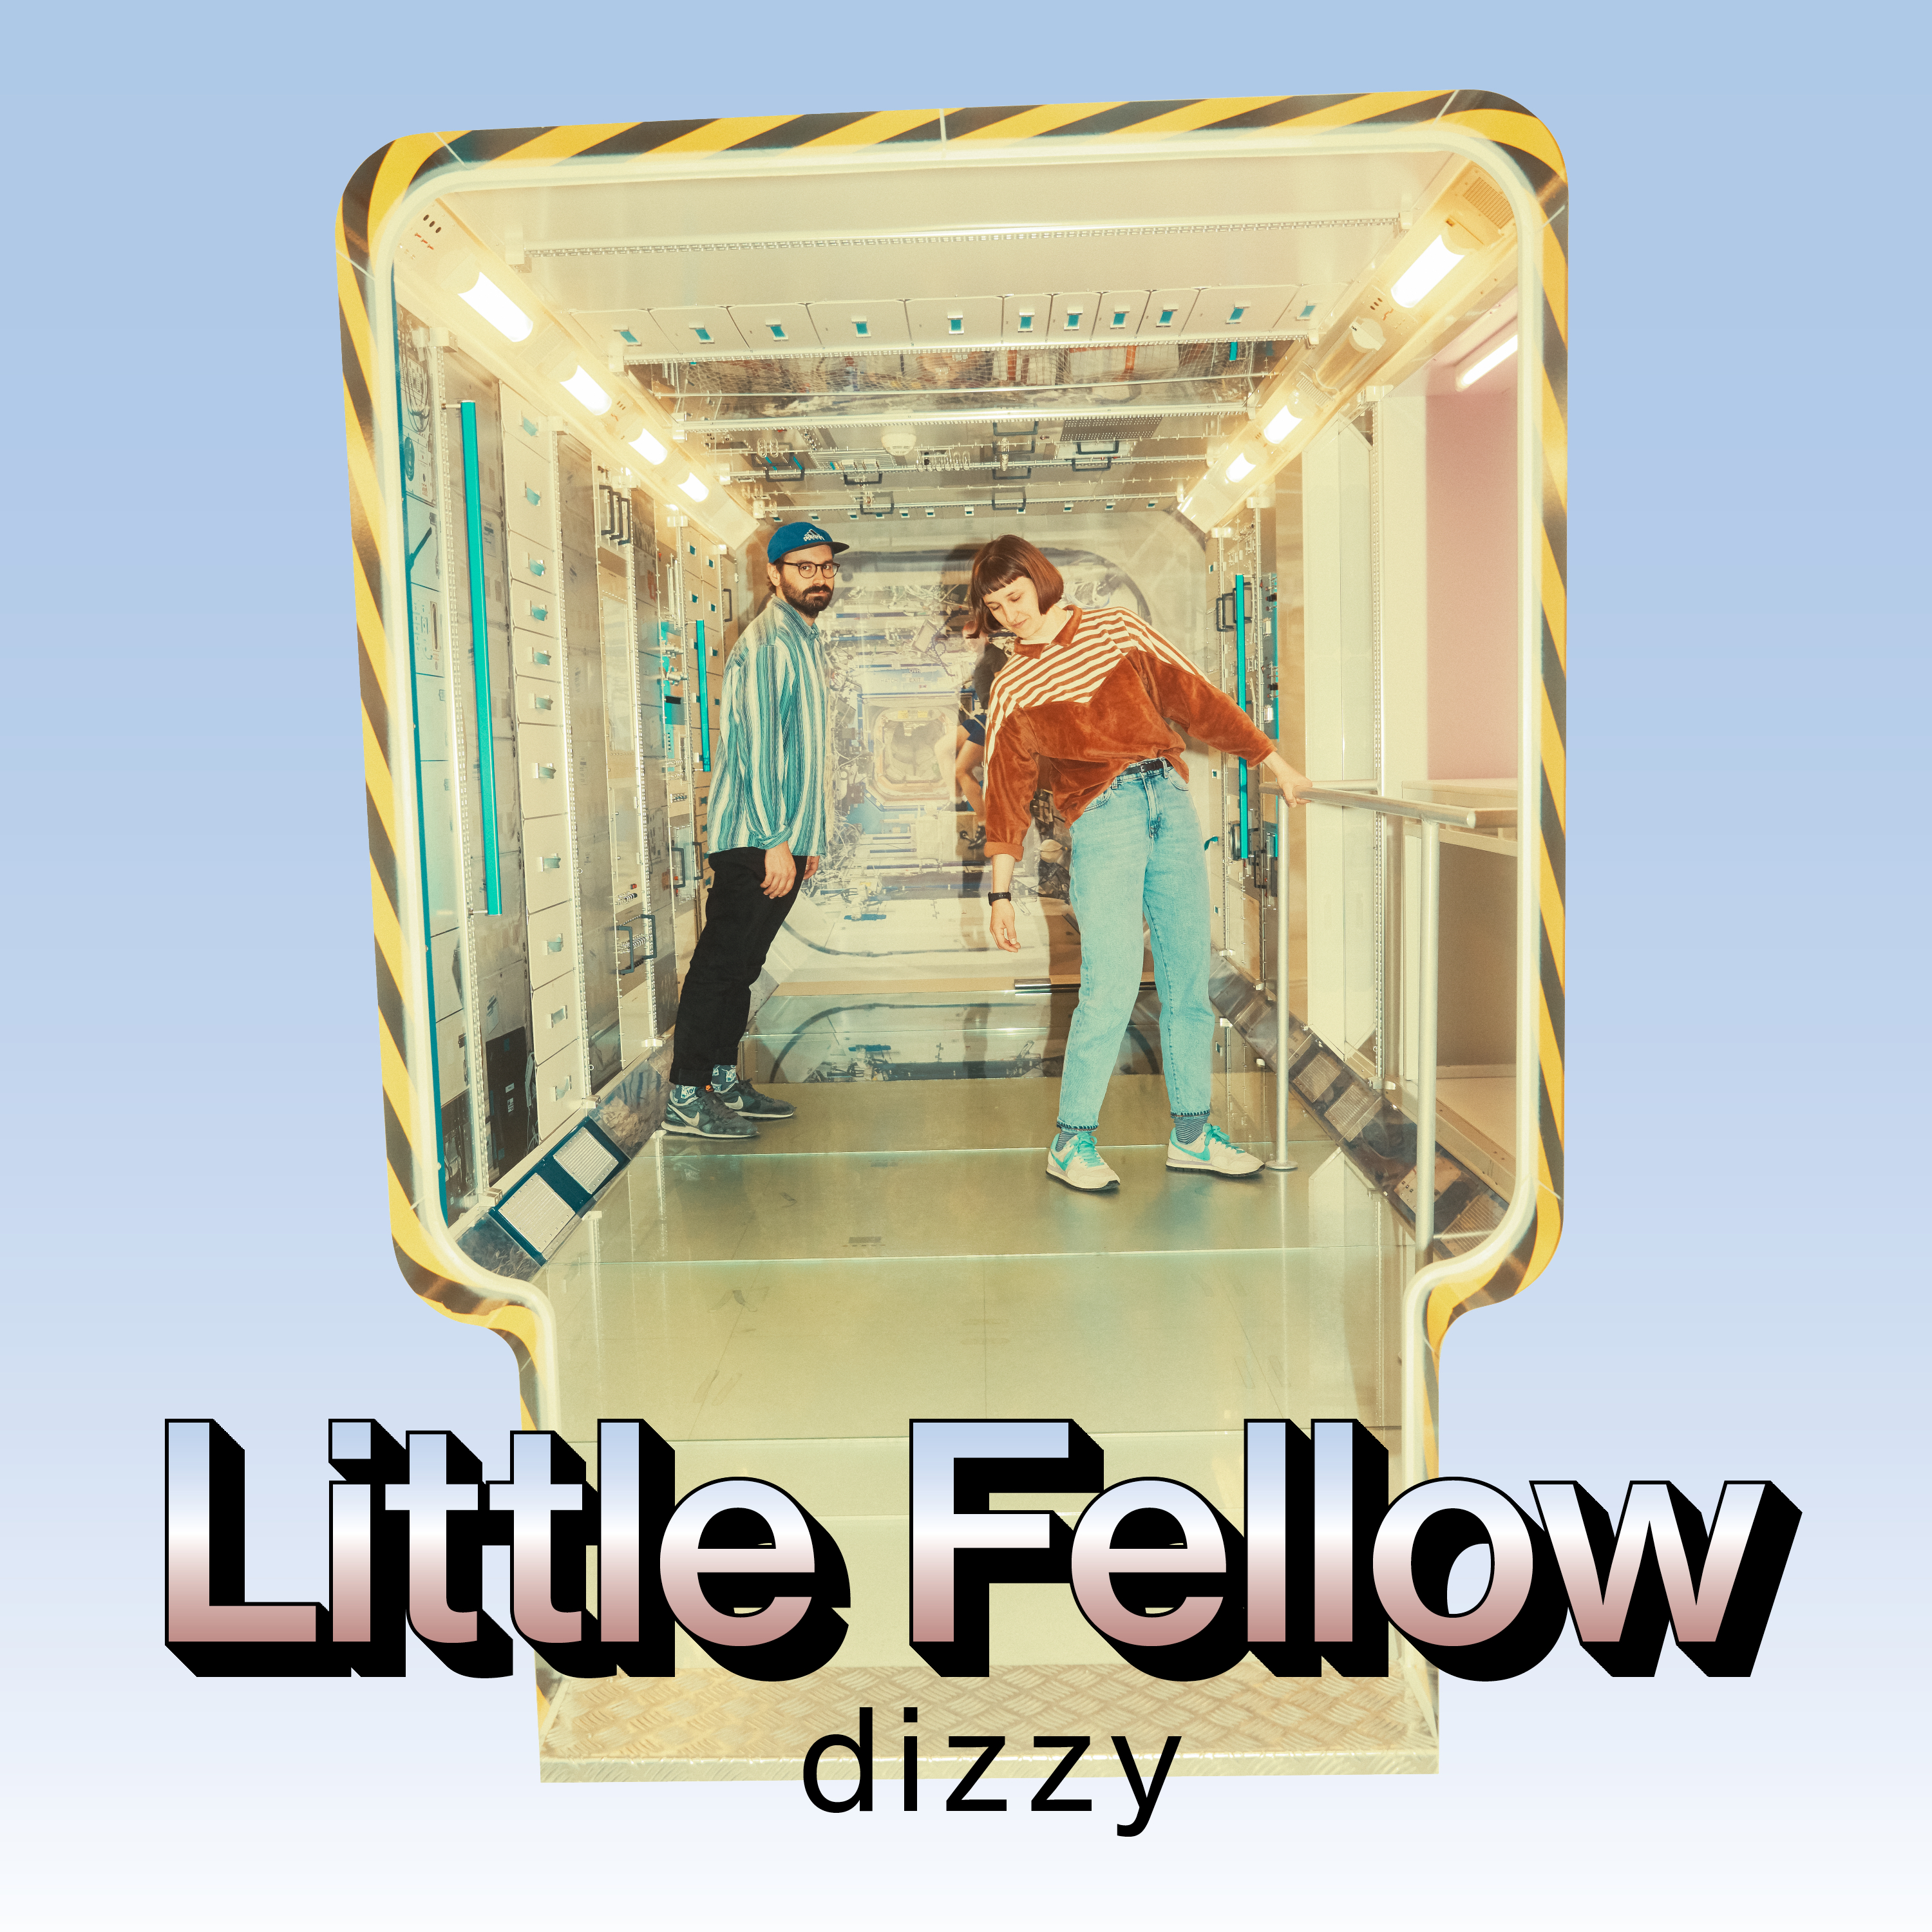 Little Fellow – dizzy